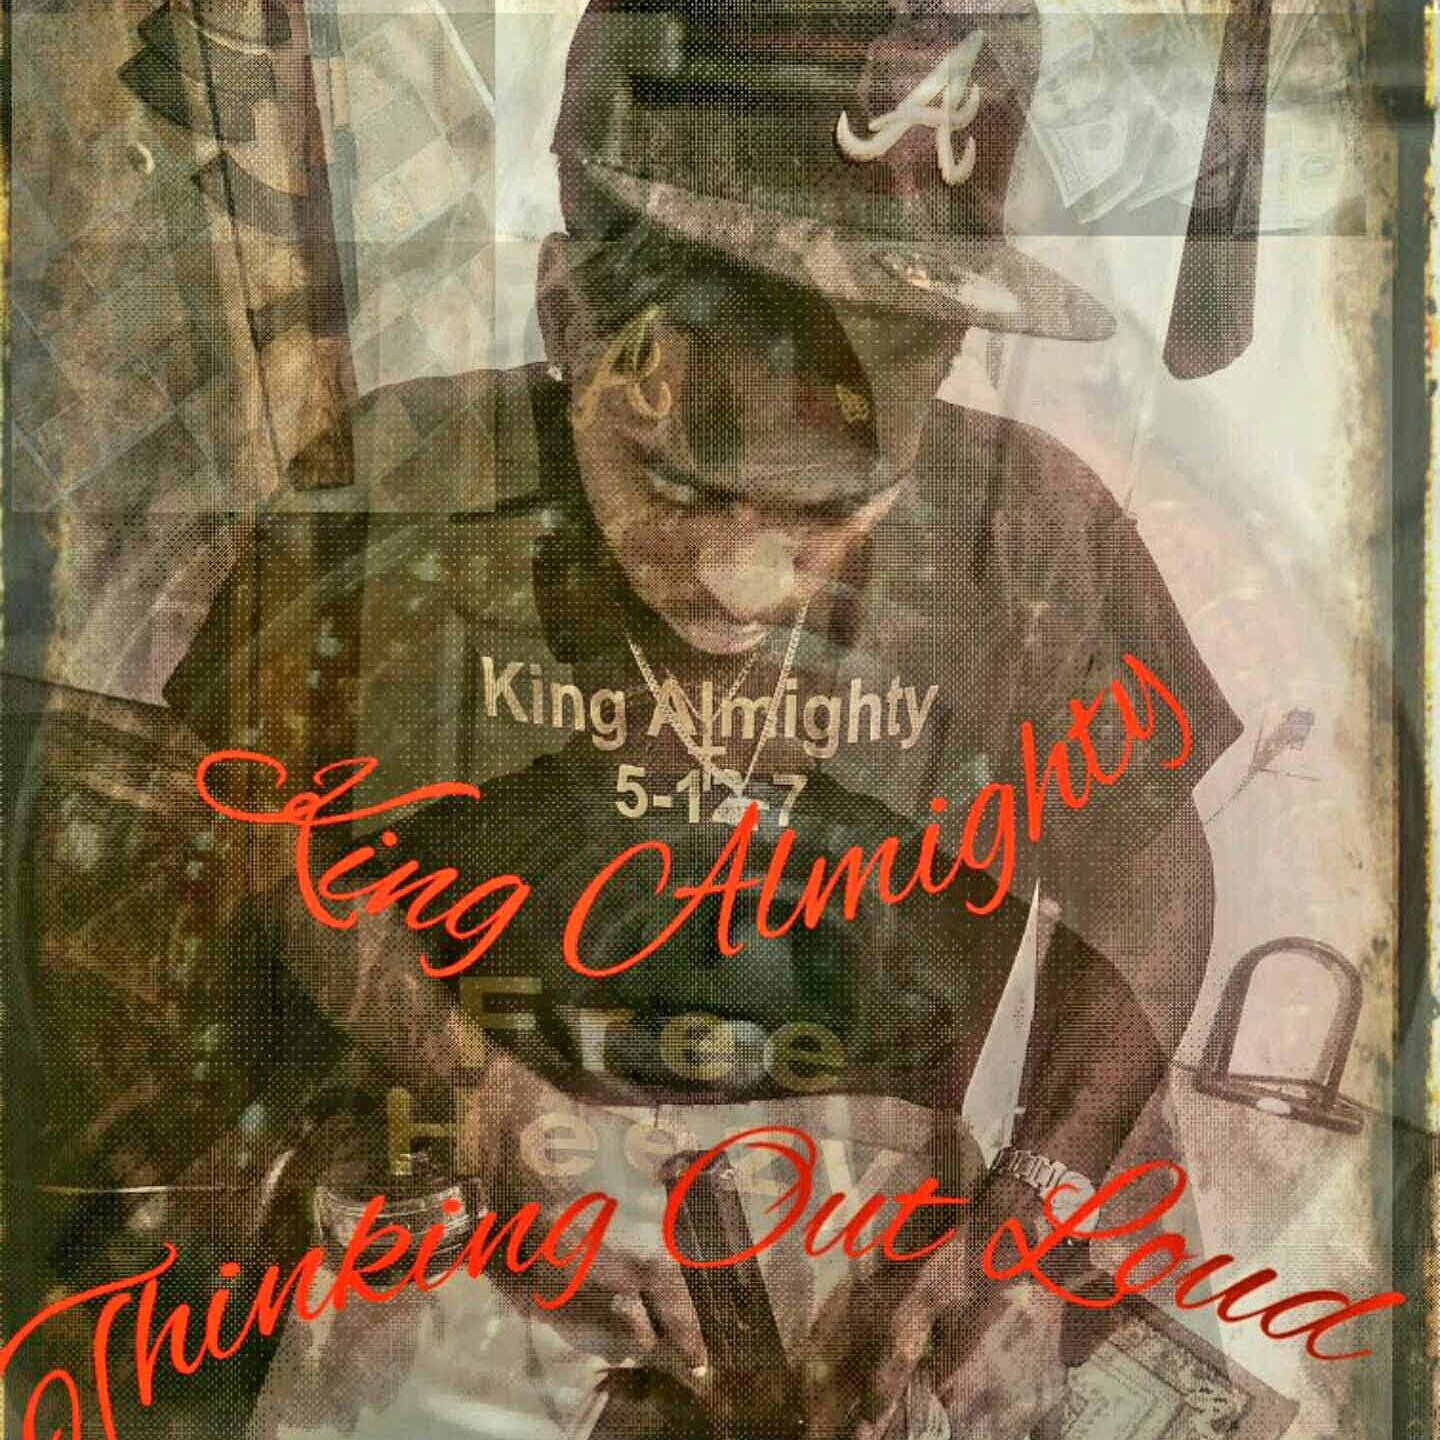 King Almighty - Thinking Out Loud